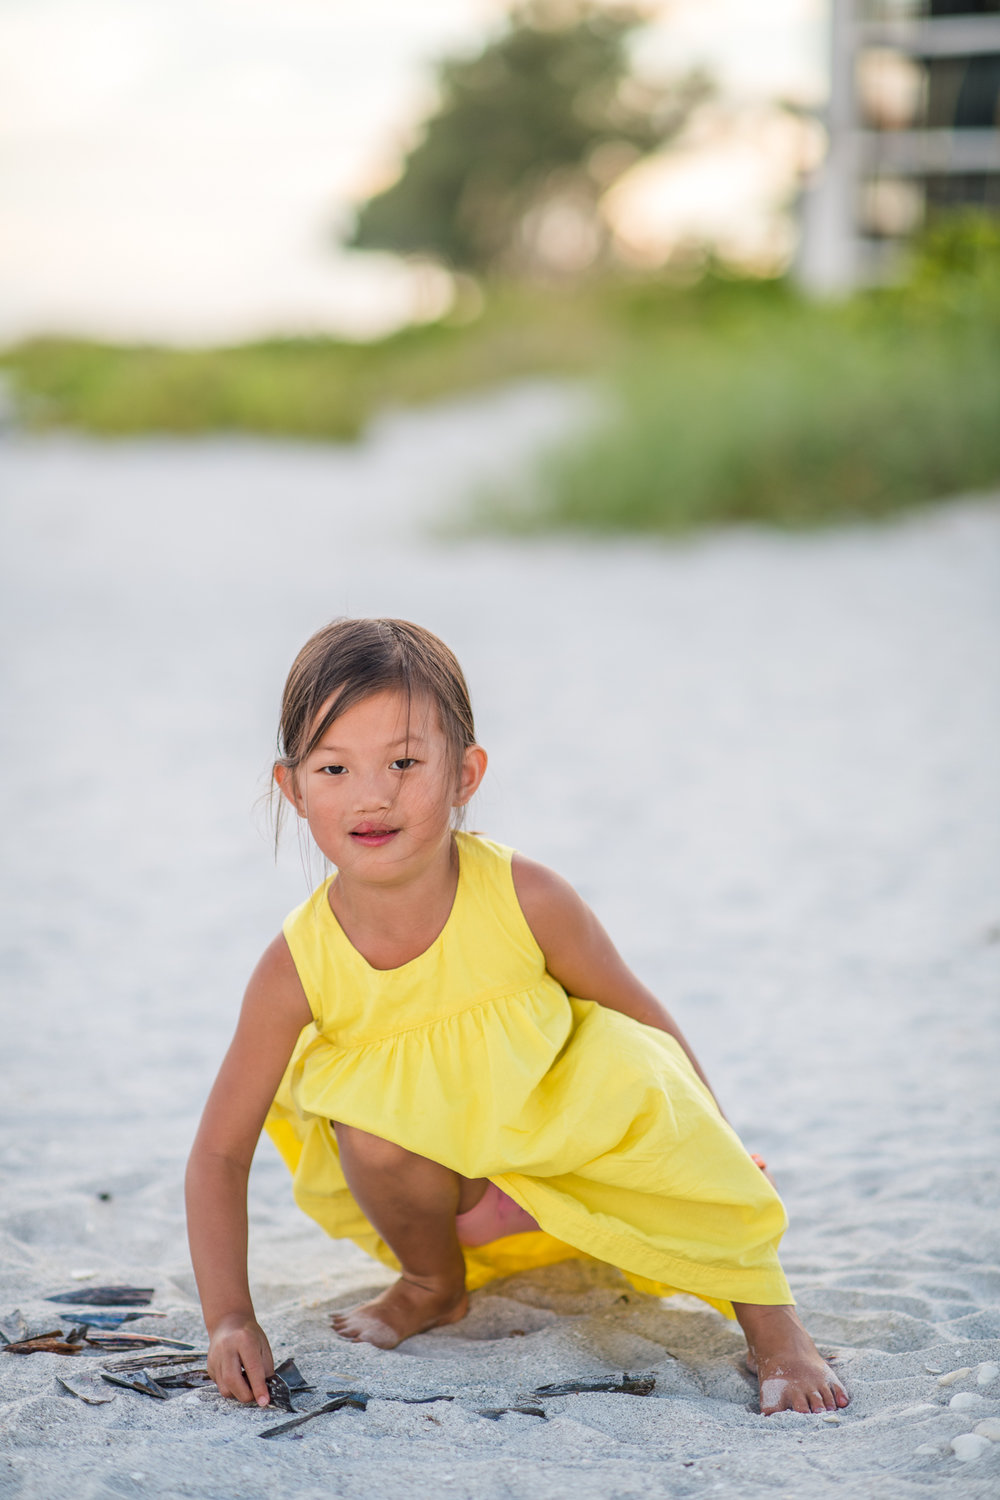 sanibel-island-beach-play-10.jpg